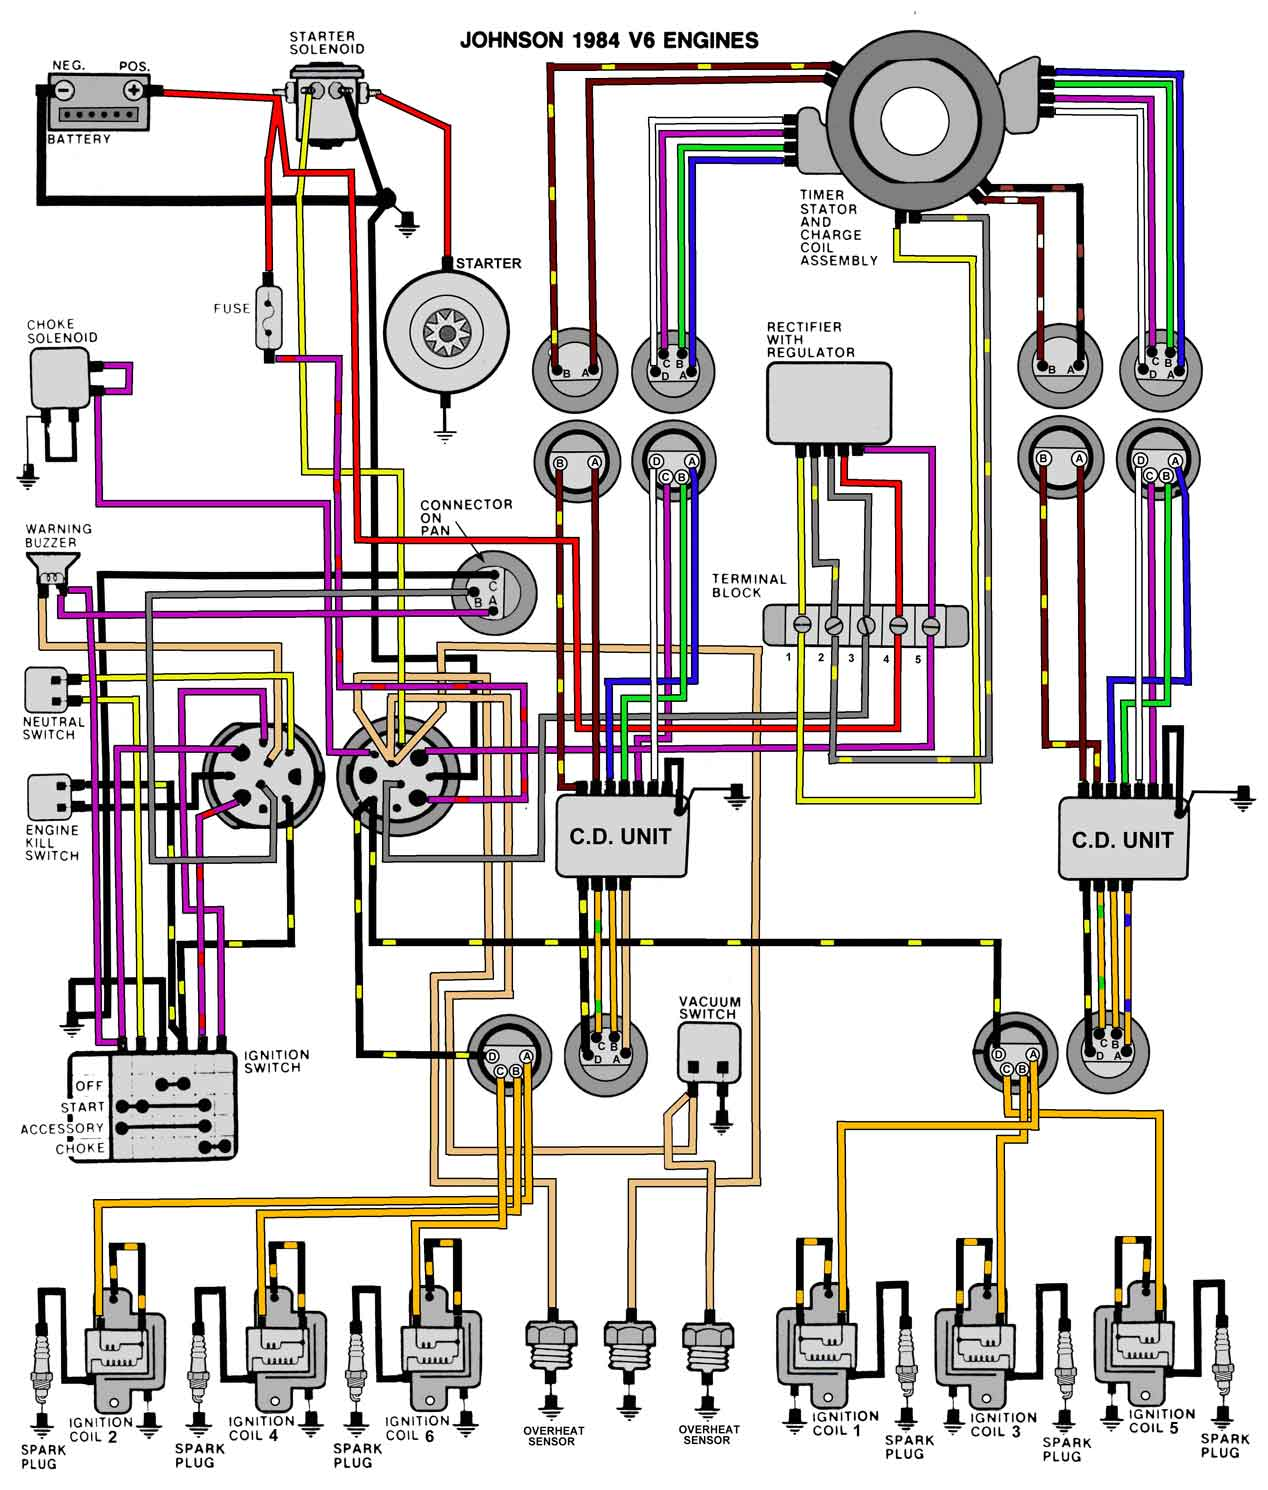 johnson ignition wiring diagram detailed schematic diagrams freightliner electrical wiring diagrams evinrude johnson outboard wiring diagrams mastertech marine ignition starter switch wiring johnson ignition wiring diagram